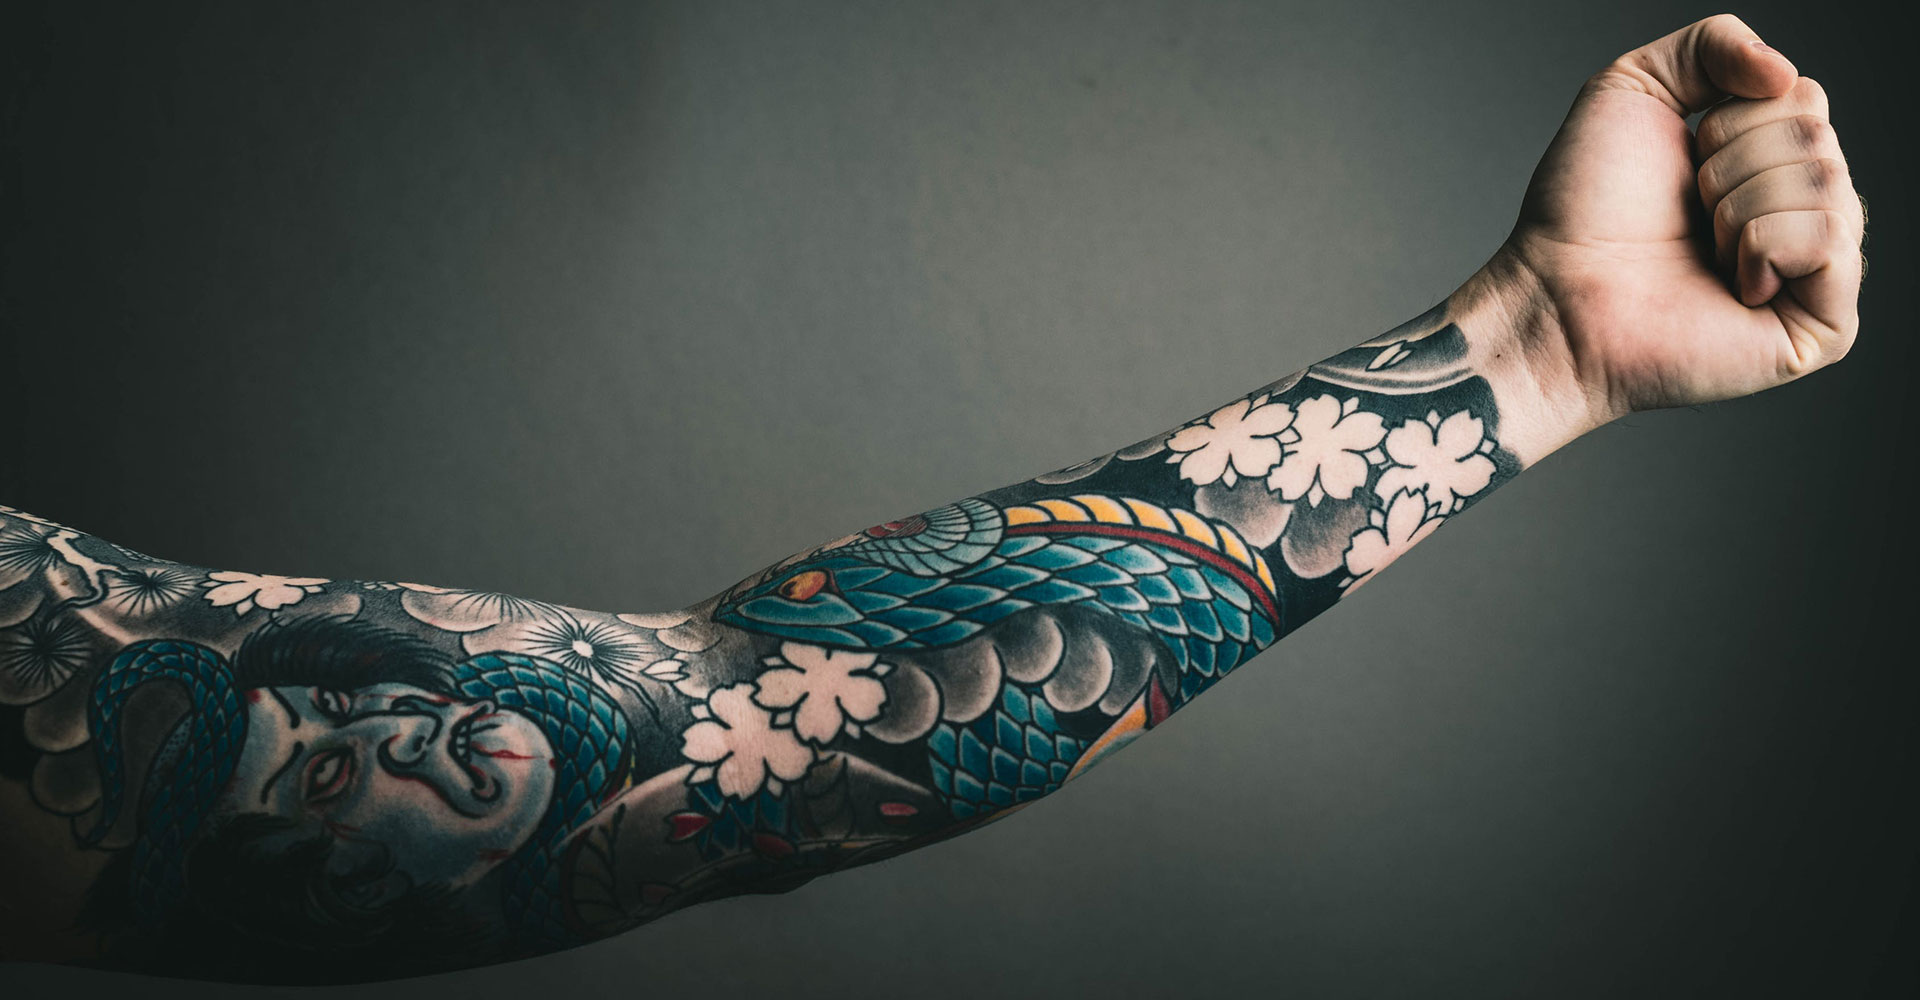 Best Tattoo Artist In Gurgaon Tattoo Shop In Gurgaon Amazing Learn about tattoos, discover their symbolic meaning, find inspiration, collect the ones you like and easily contact. amazingtattooart com